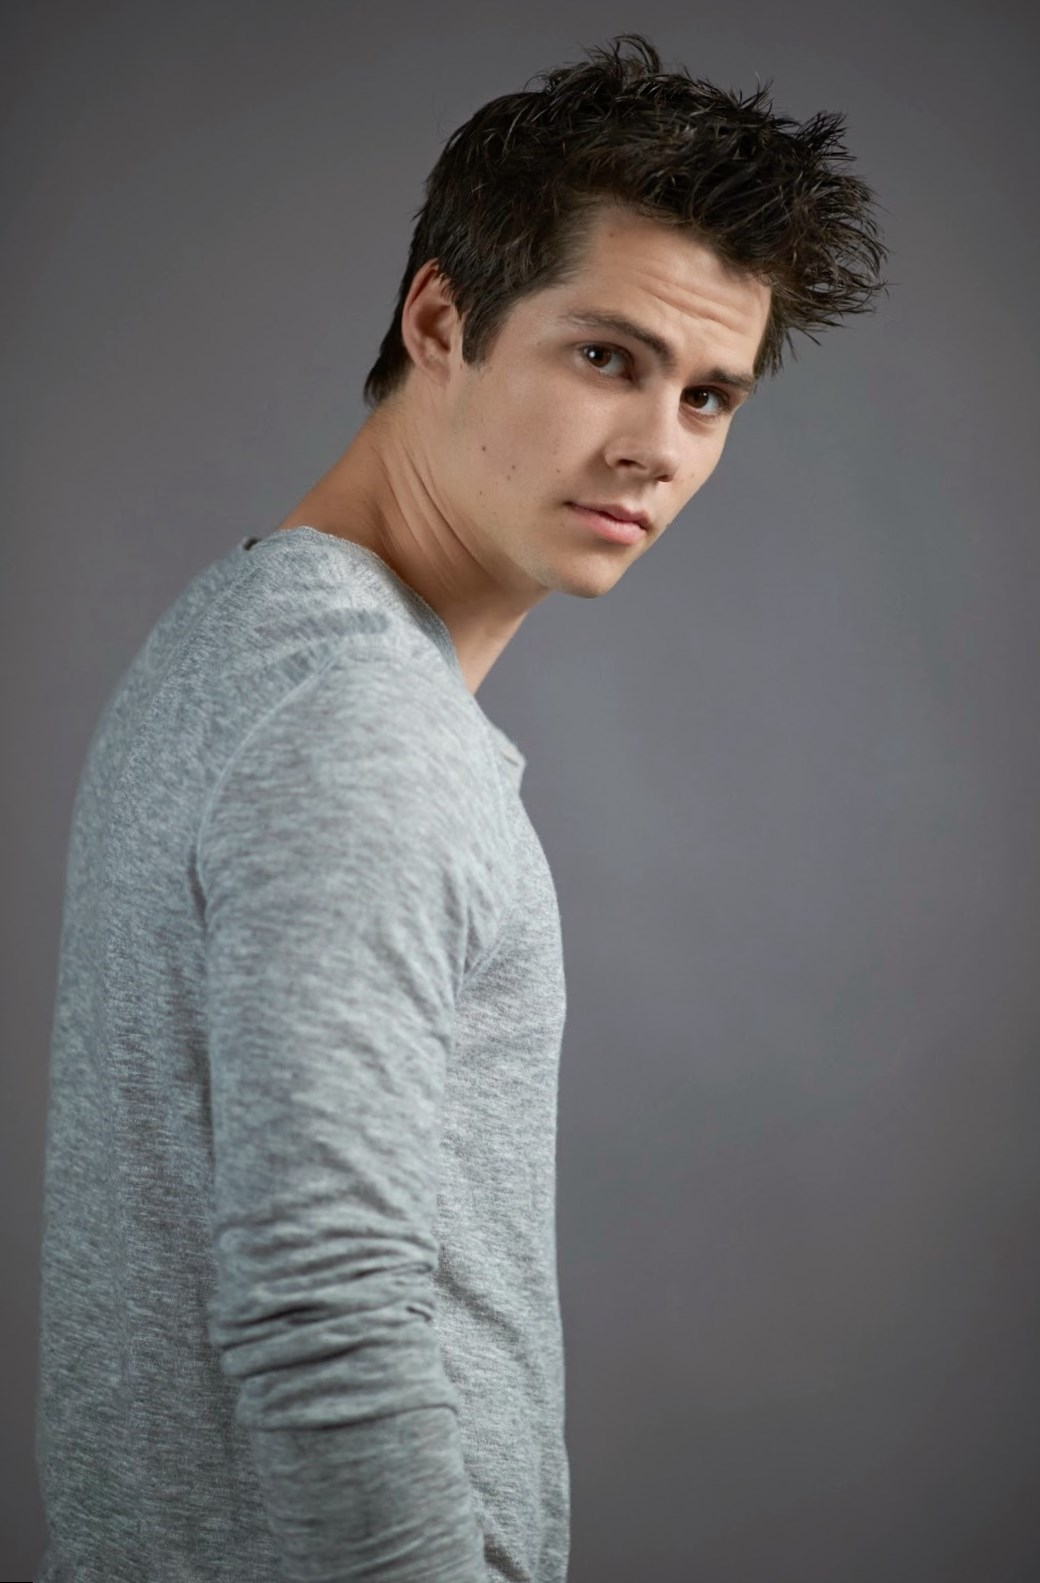 Dylan O'Brien - Best Movies & TV shows